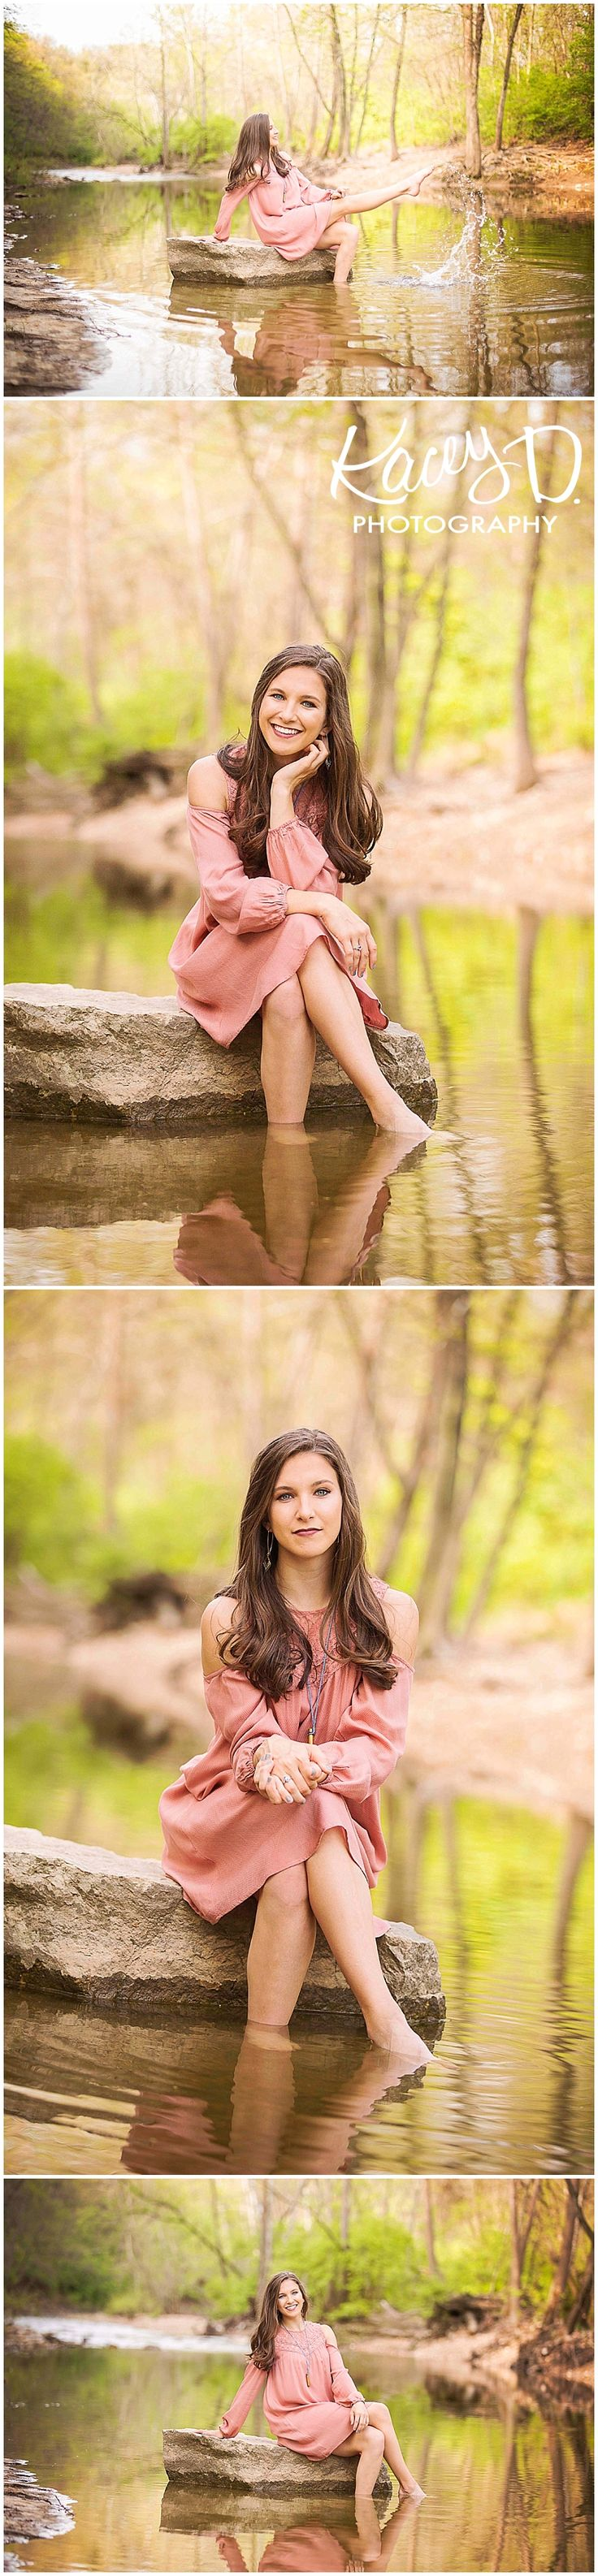 Lake Pond Creek Senior Pictures Kacey D Photography